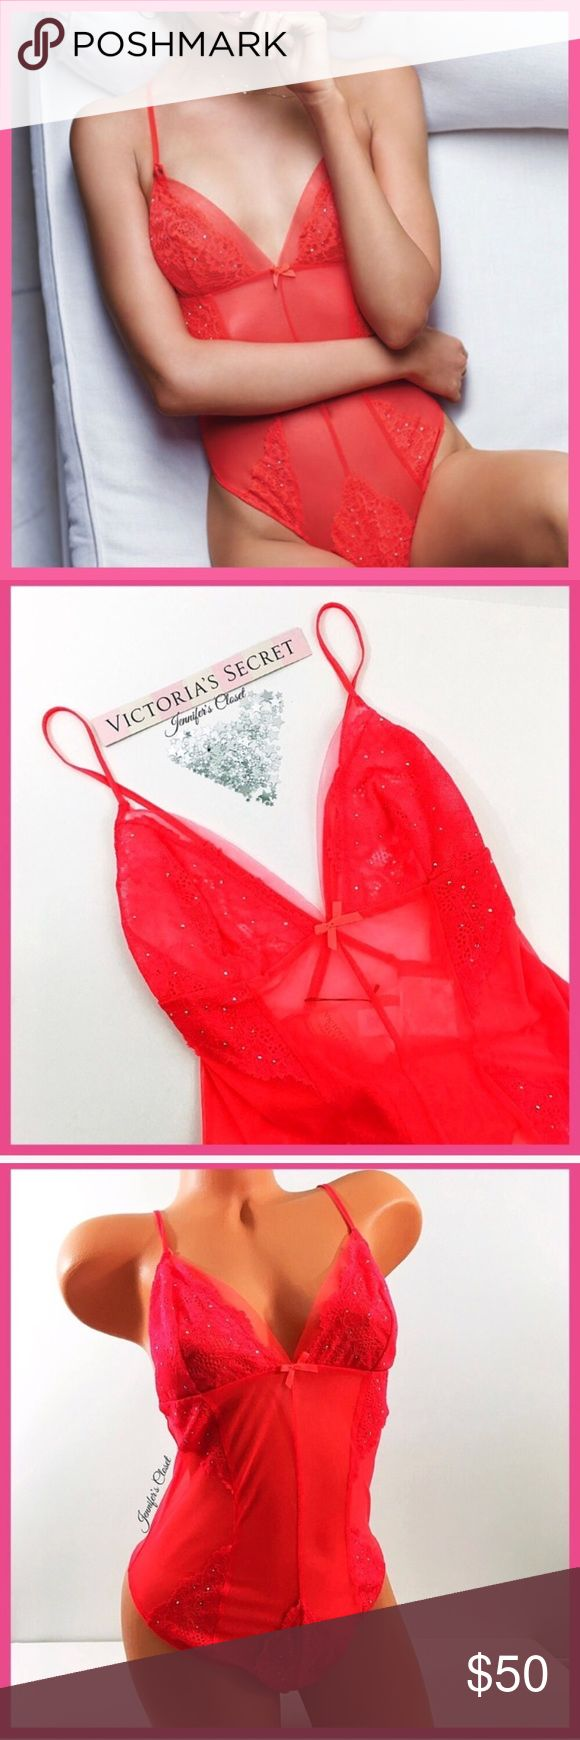 •Victoria's Secret• Red Rhinestone teddy V I C T O R I A 'S ✦ S E C R E T    ❈ Condition: New with tags  ❈ Reasonable Offers Always Welcome!  ❈ Fast shipping Monday⇢Friday  Same/Next day after your purchase  ❈ Questions? Please comment below,  I will be more than happy to assist you ☻  ❈ Bundles are always encouraged to save on shipping!   ❈Thank you for stopping by! Looking forward to having you as a customer, or having you back as a return customer -xo ღ Jennifer Victoria's Secret…